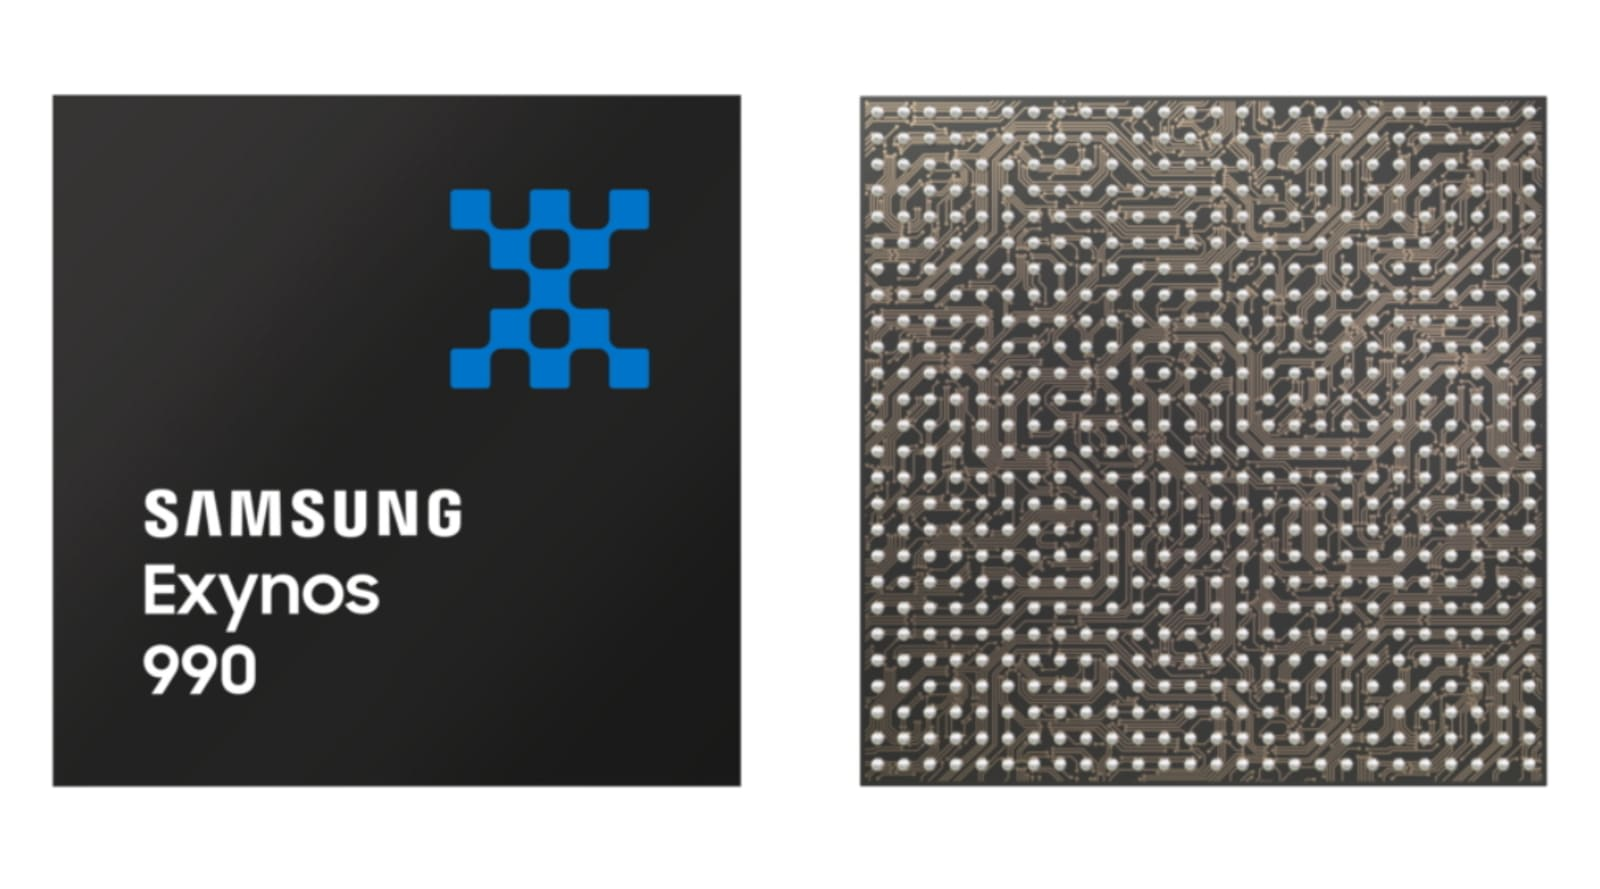 Samsung says its new flagship processor is 20 percent faster